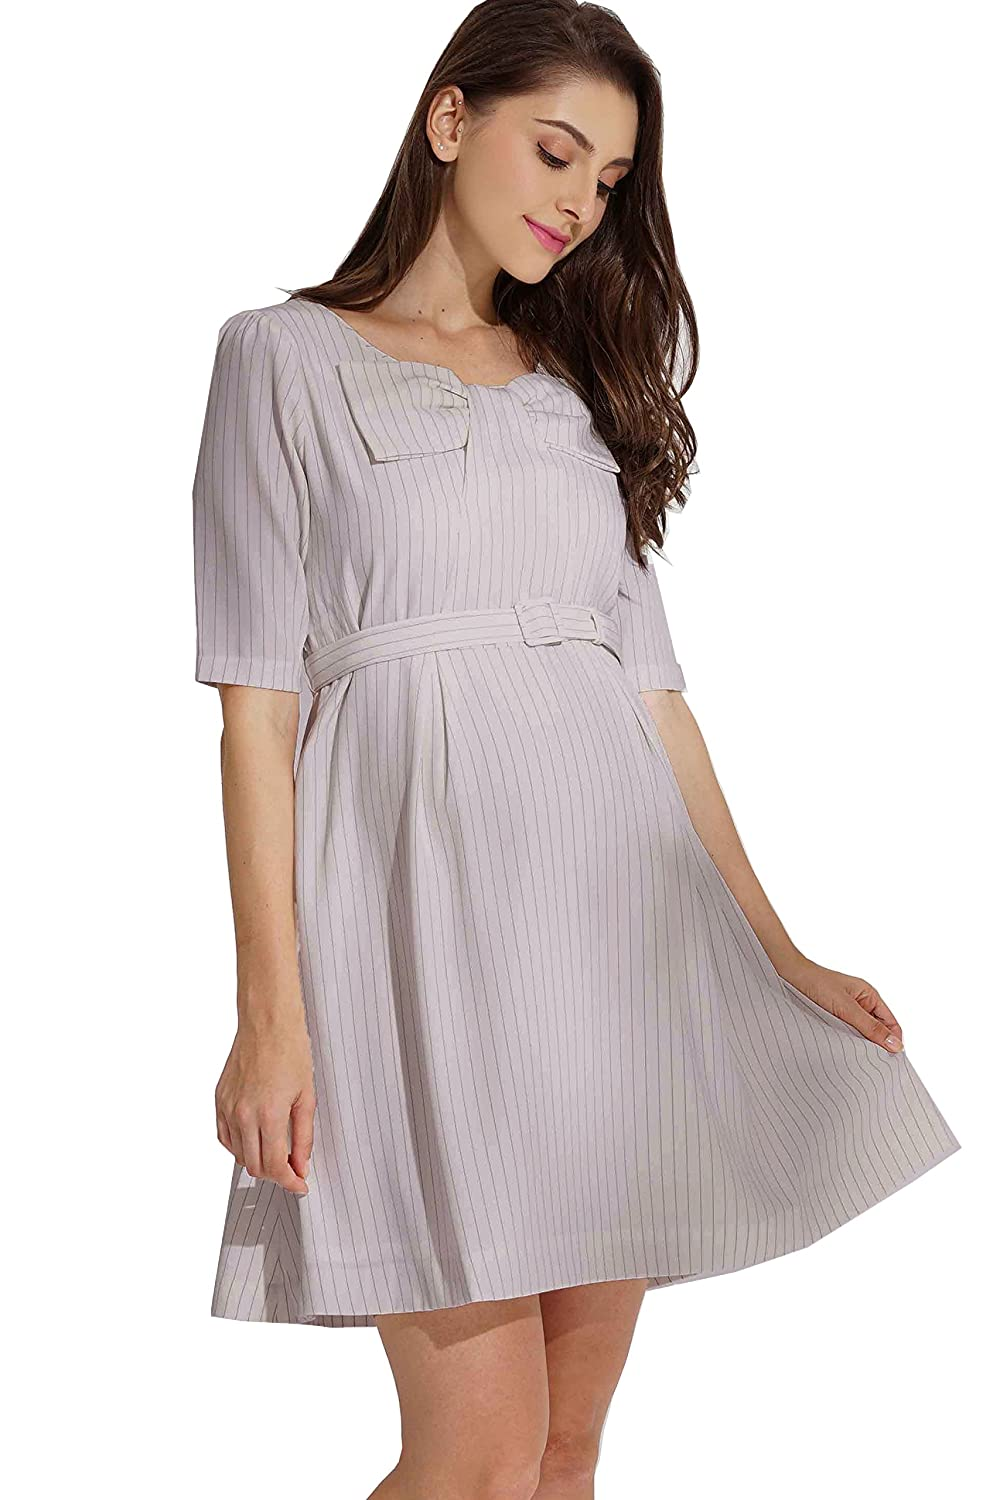 Sweet Mommy Maternity and Nursing Bow Top Belted Dress Sweet Mommy Co. Ltd so5144